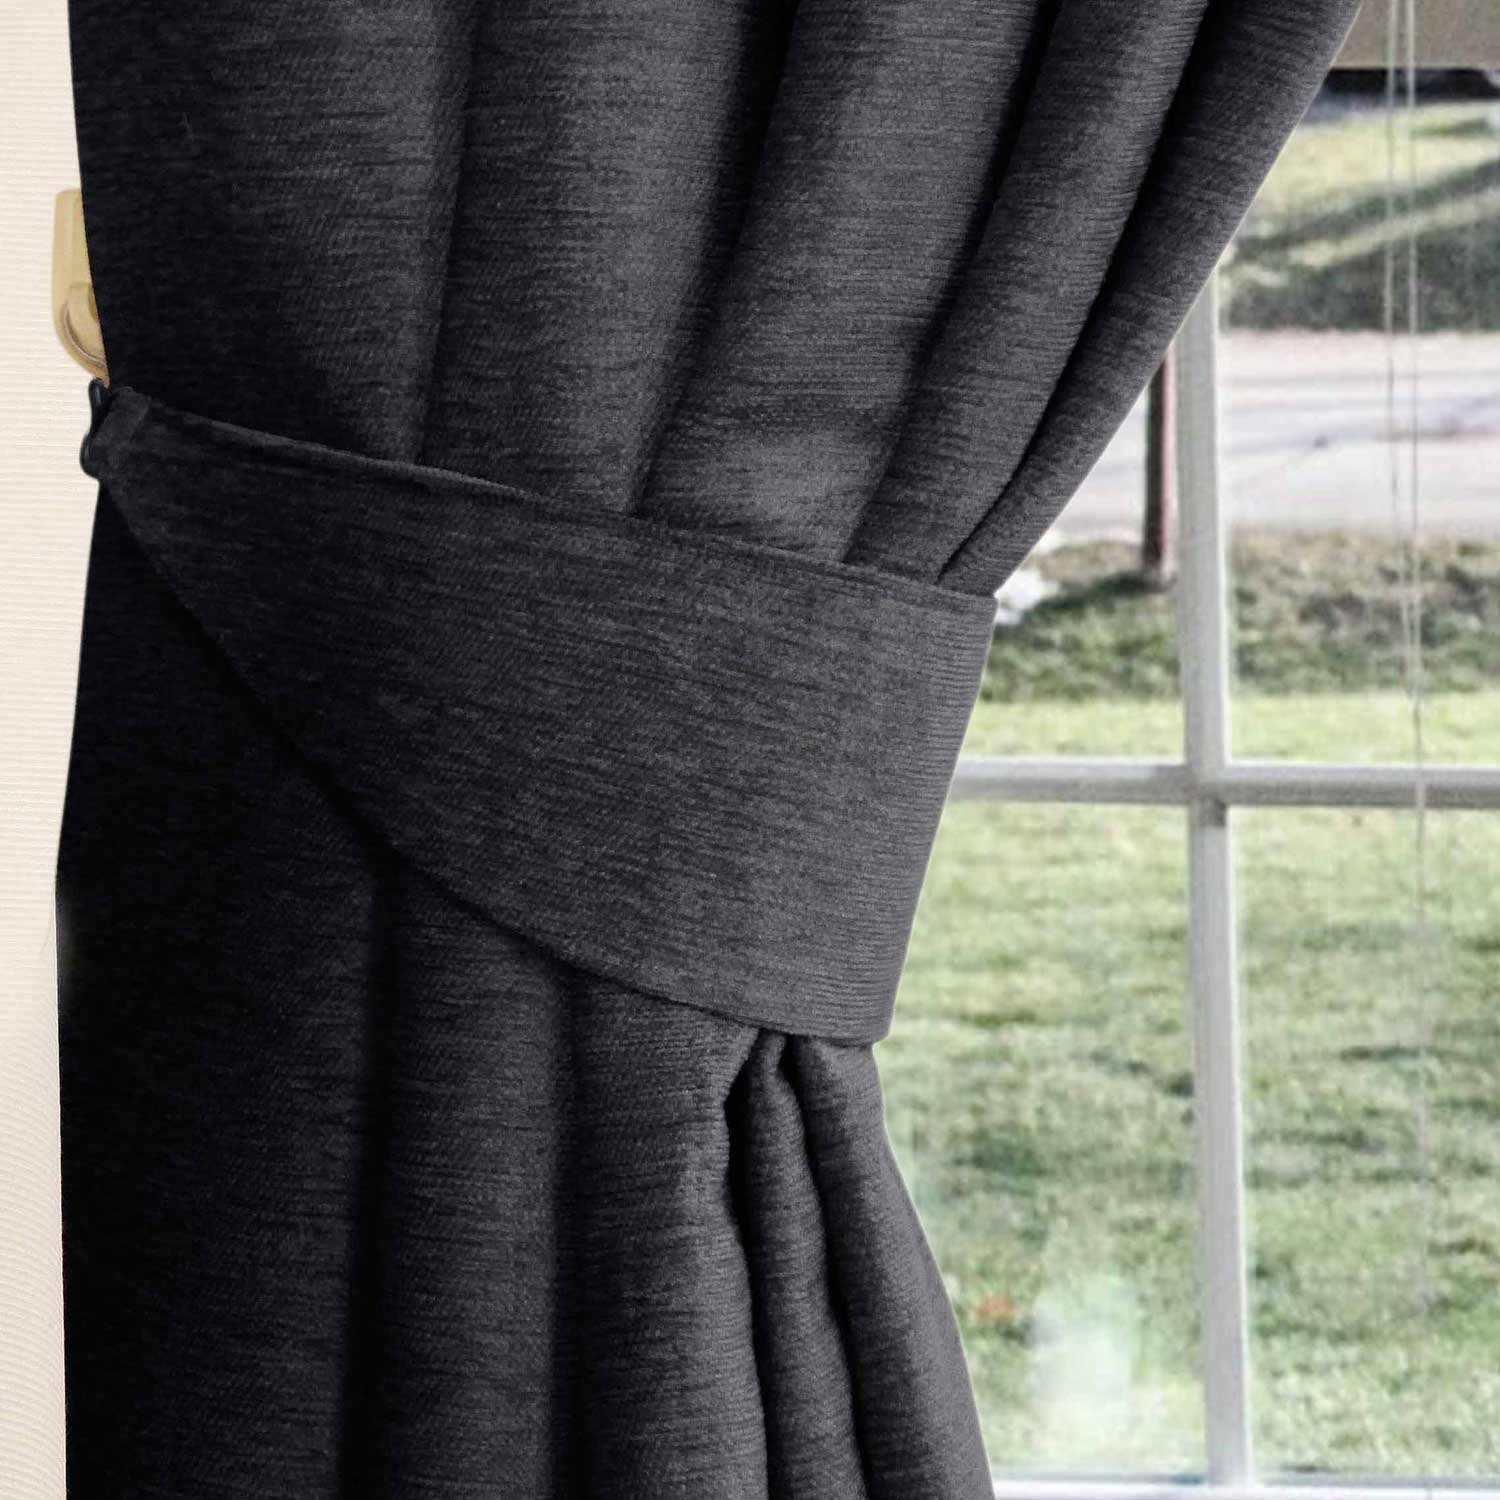 Homescapes Pewter Grey Chenille Curtains Tie Backs Pair, 2 Tie Backs For  Curtains   Coordinating With Chenille Thermal Pencil Pleat Curtains.